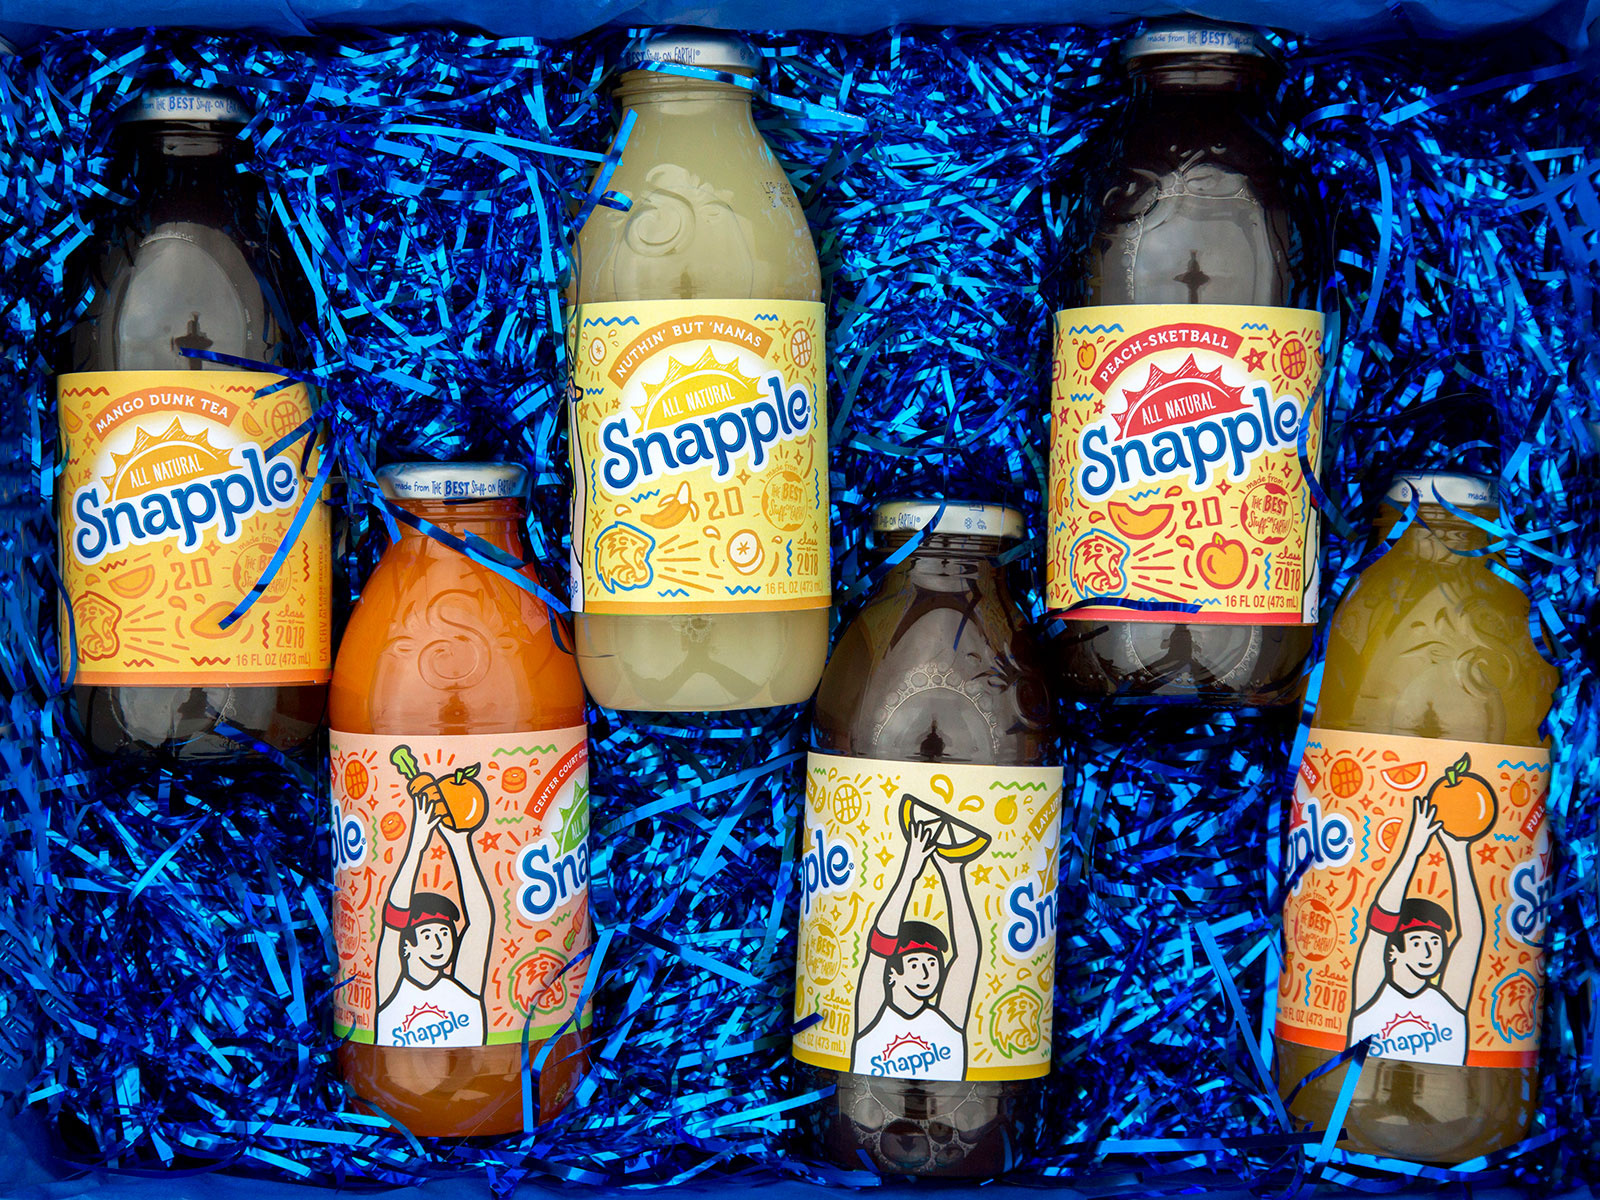 snapple bottles with mural